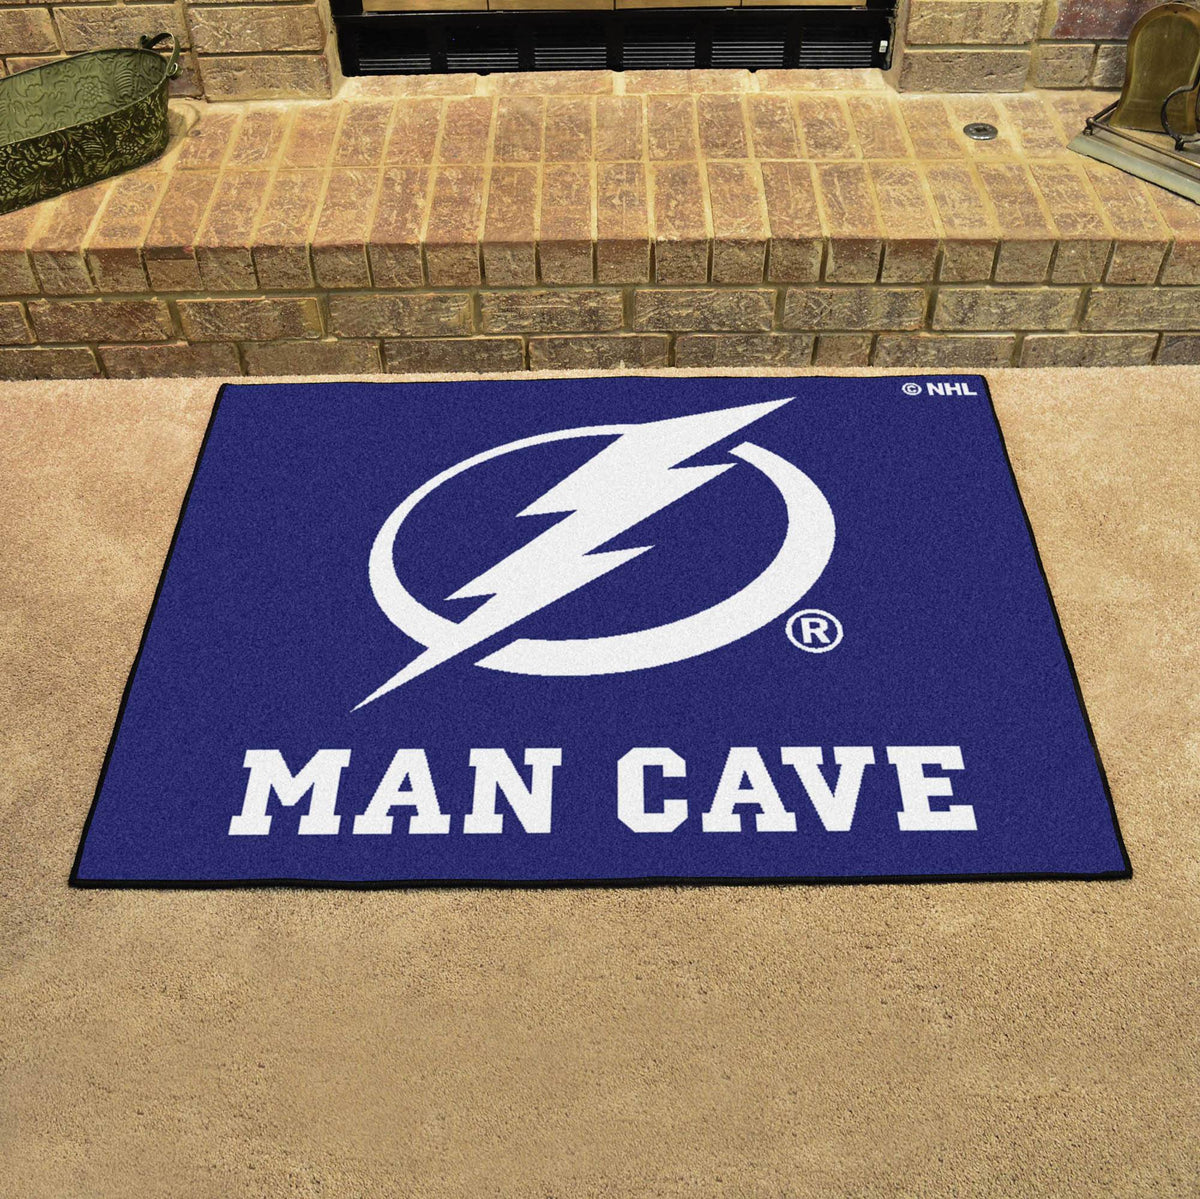 NHL - Man Cave All-Star NHL Mats, Rectangular Mats, Man Cave All-Star Mat, NHL, Home Fan Mats Tampa Bay Lightning